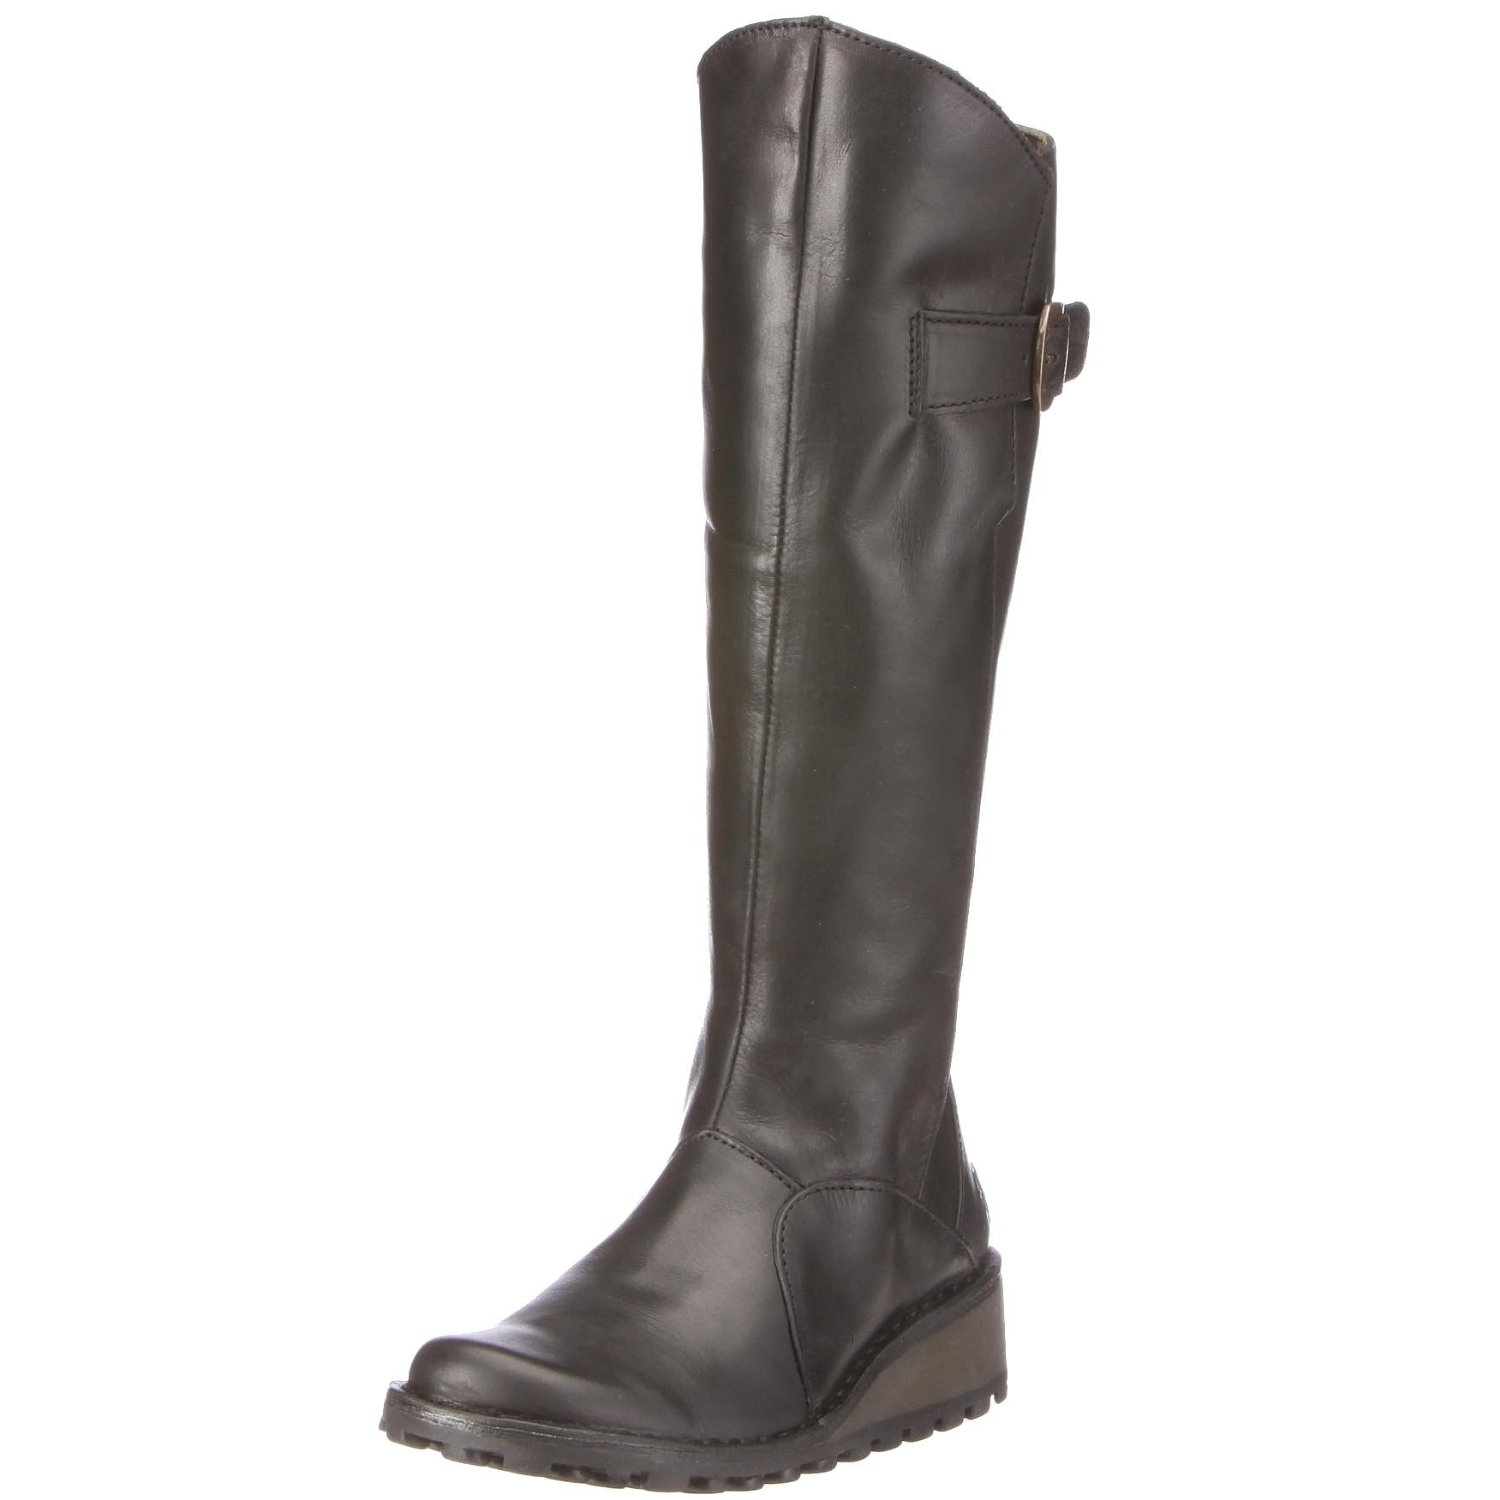 Free shipping BOTH ways on Boots, Leather, from our vast selection of styles. Fast delivery, and 24/7/ real-person service with a smile. Click or call